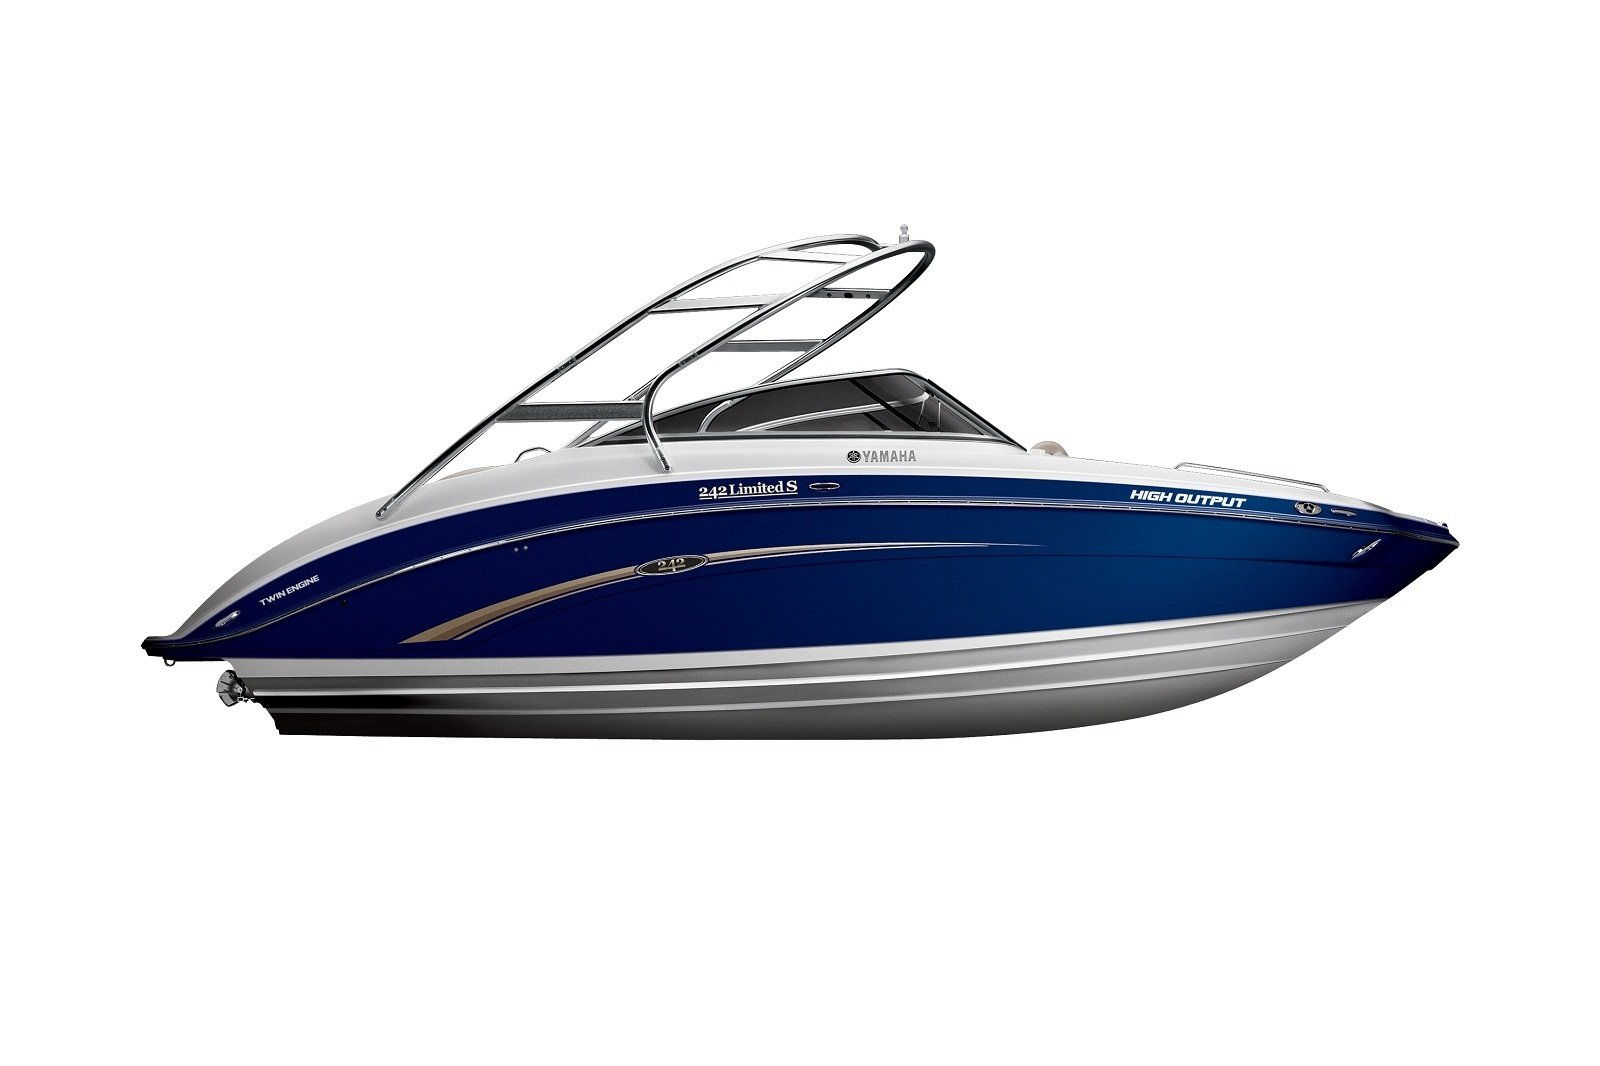 2011 yamaha 242 limited s review top speed for Yamaha 242 for sale